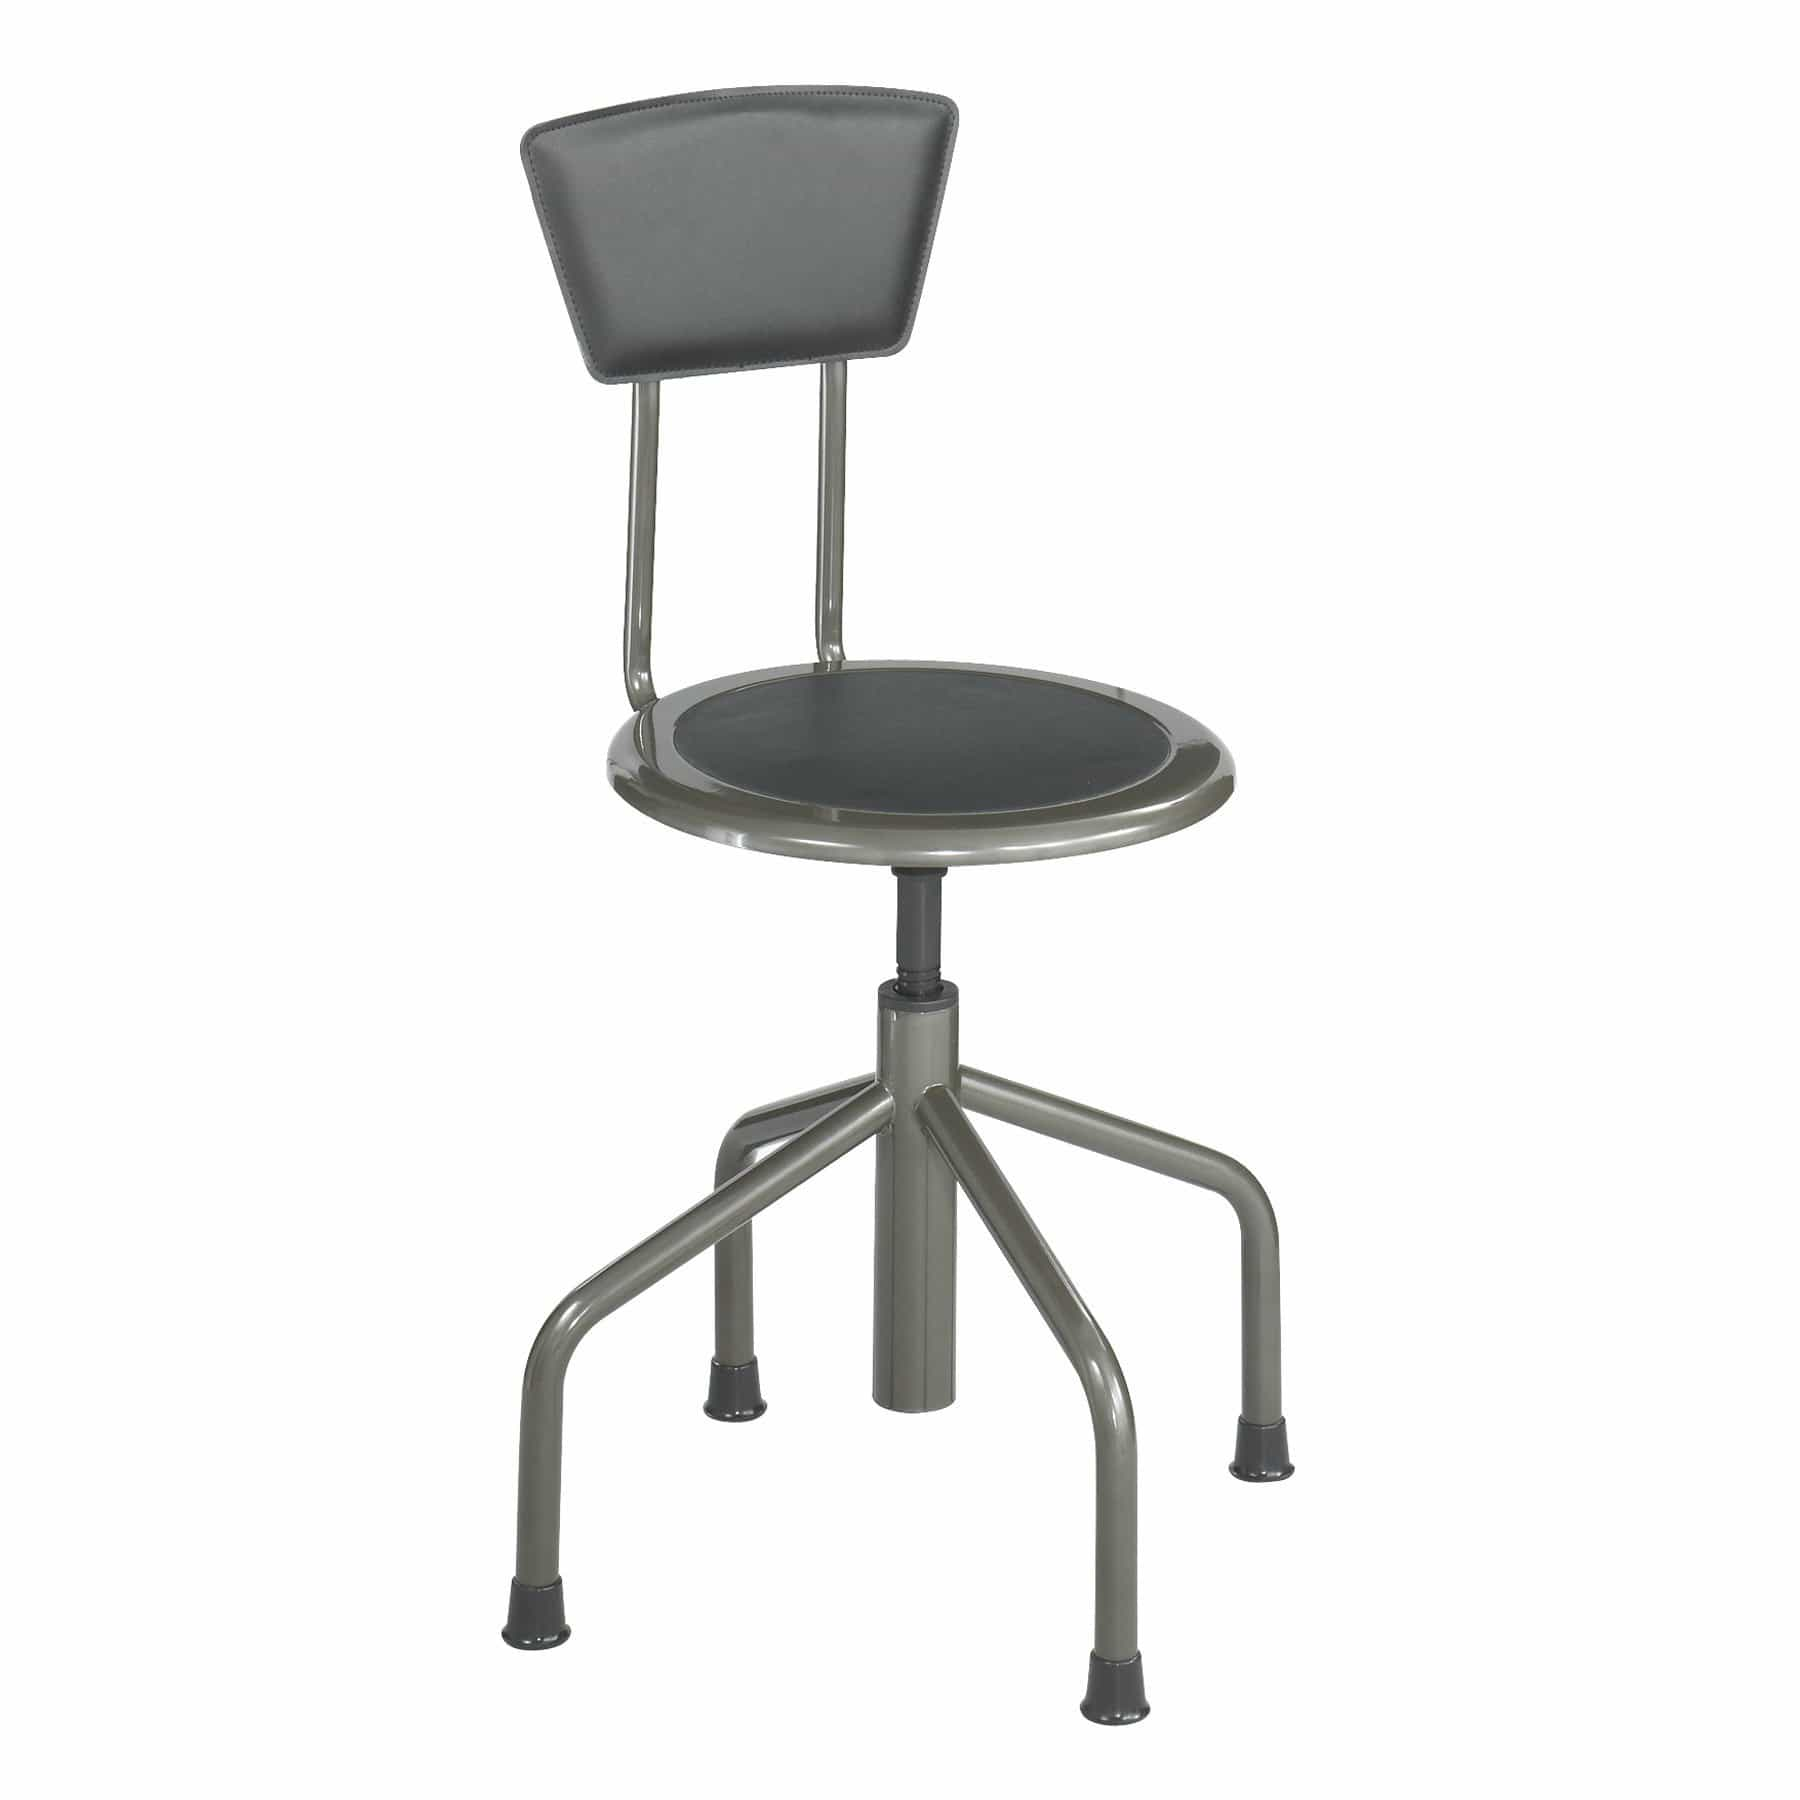 bedinhome - Industrial Seating Diesel Low Base Stool with Recycled Leather Padded Seat Back - Safco - Low Base Stool